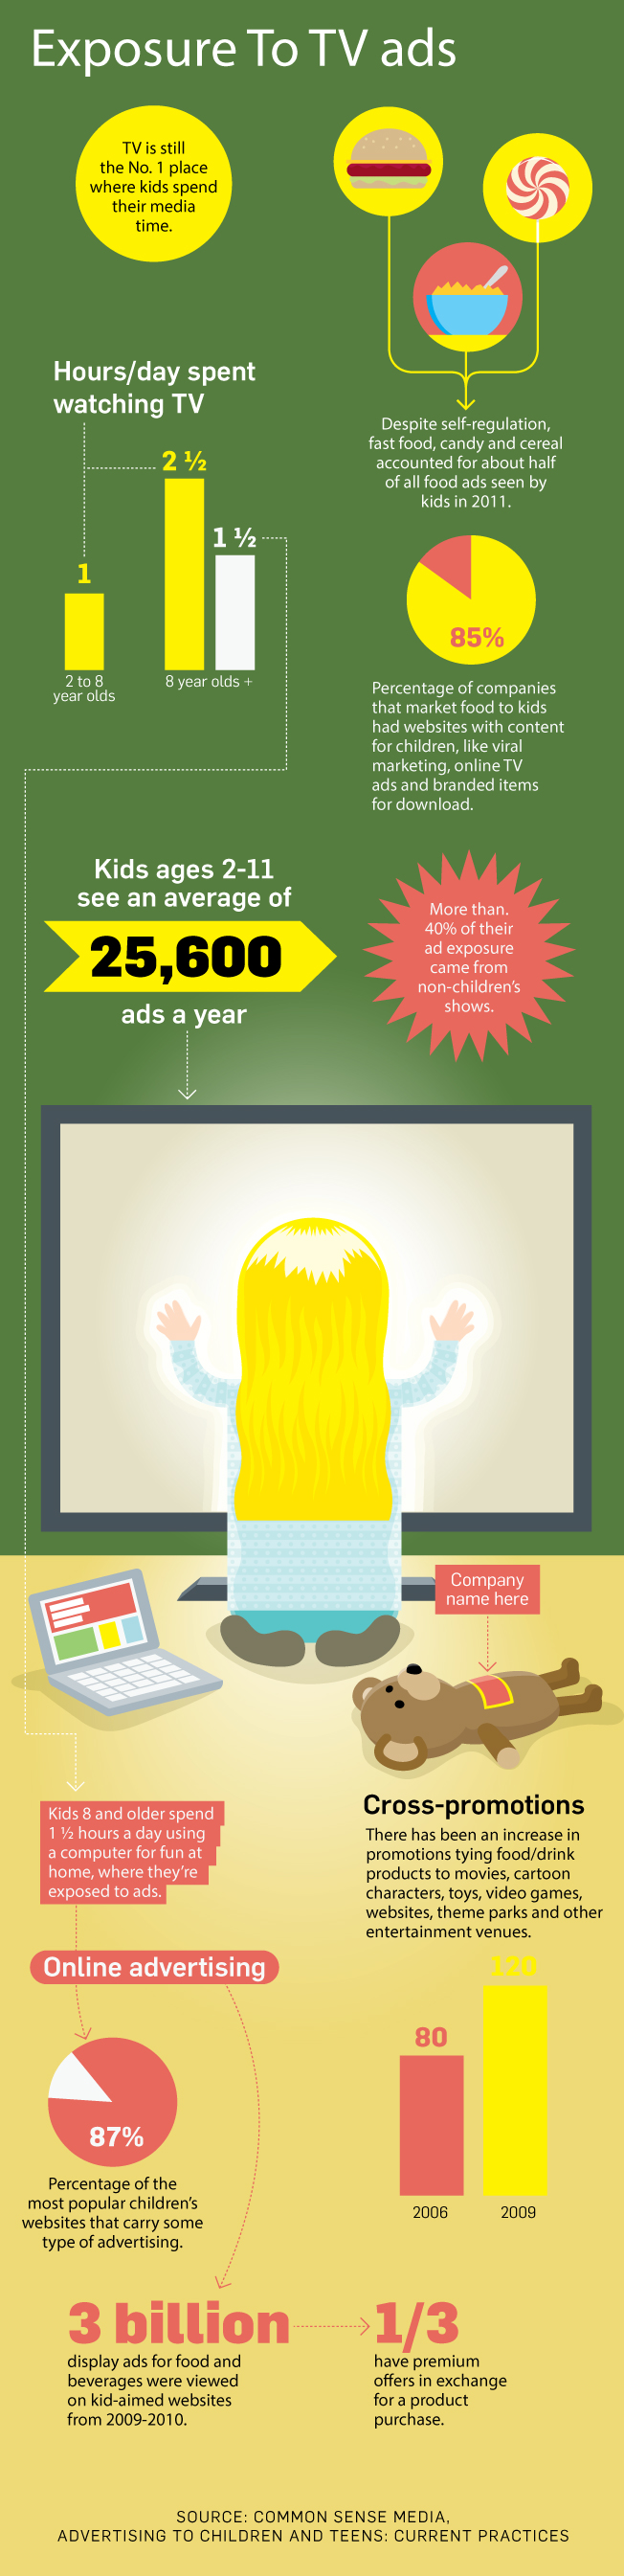 A Look at Kids' Exposure to Ads